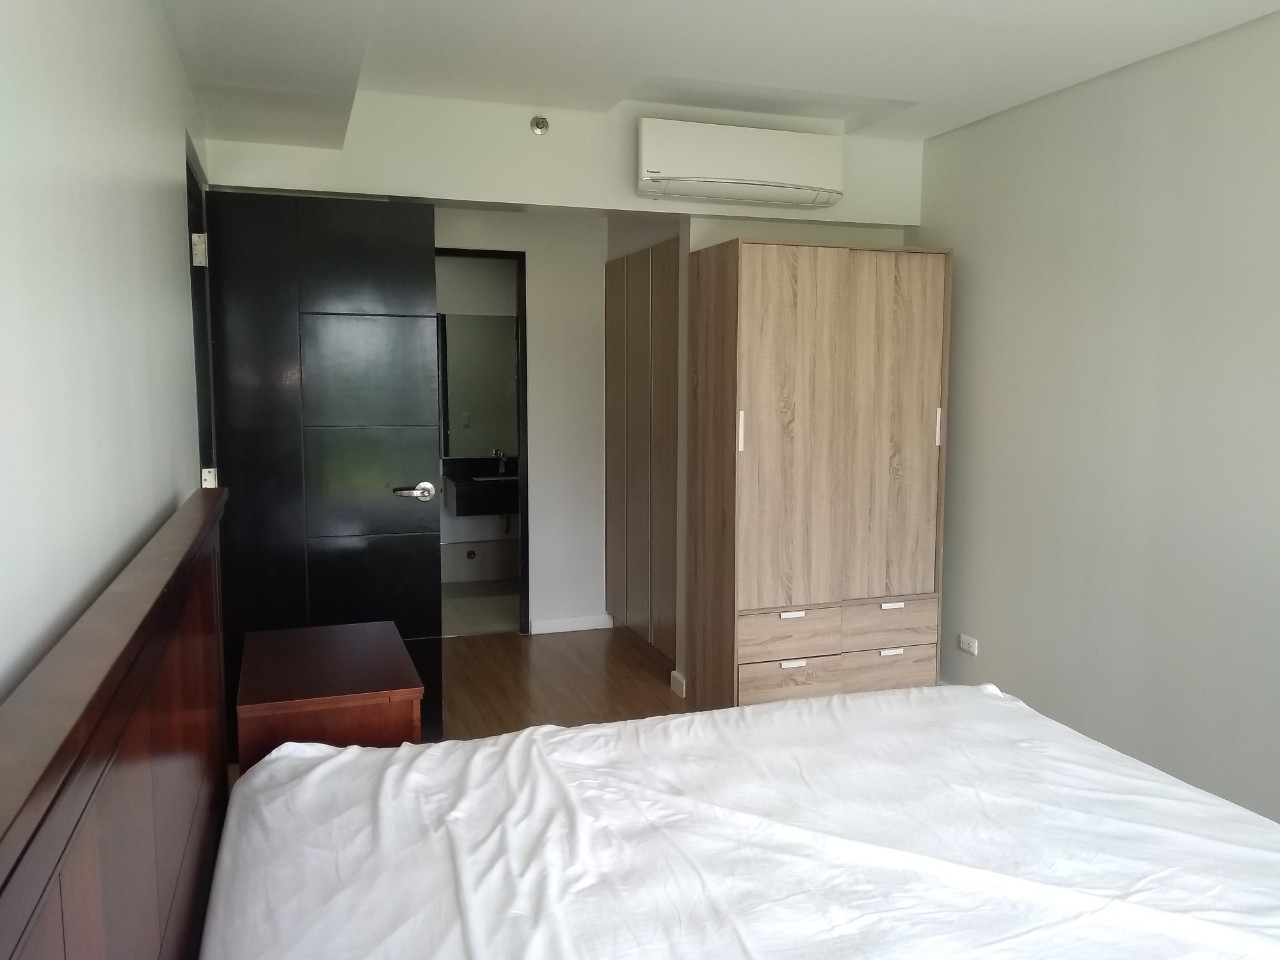 3BR Condo For Lease, The Sequoia at Two Serendra 8